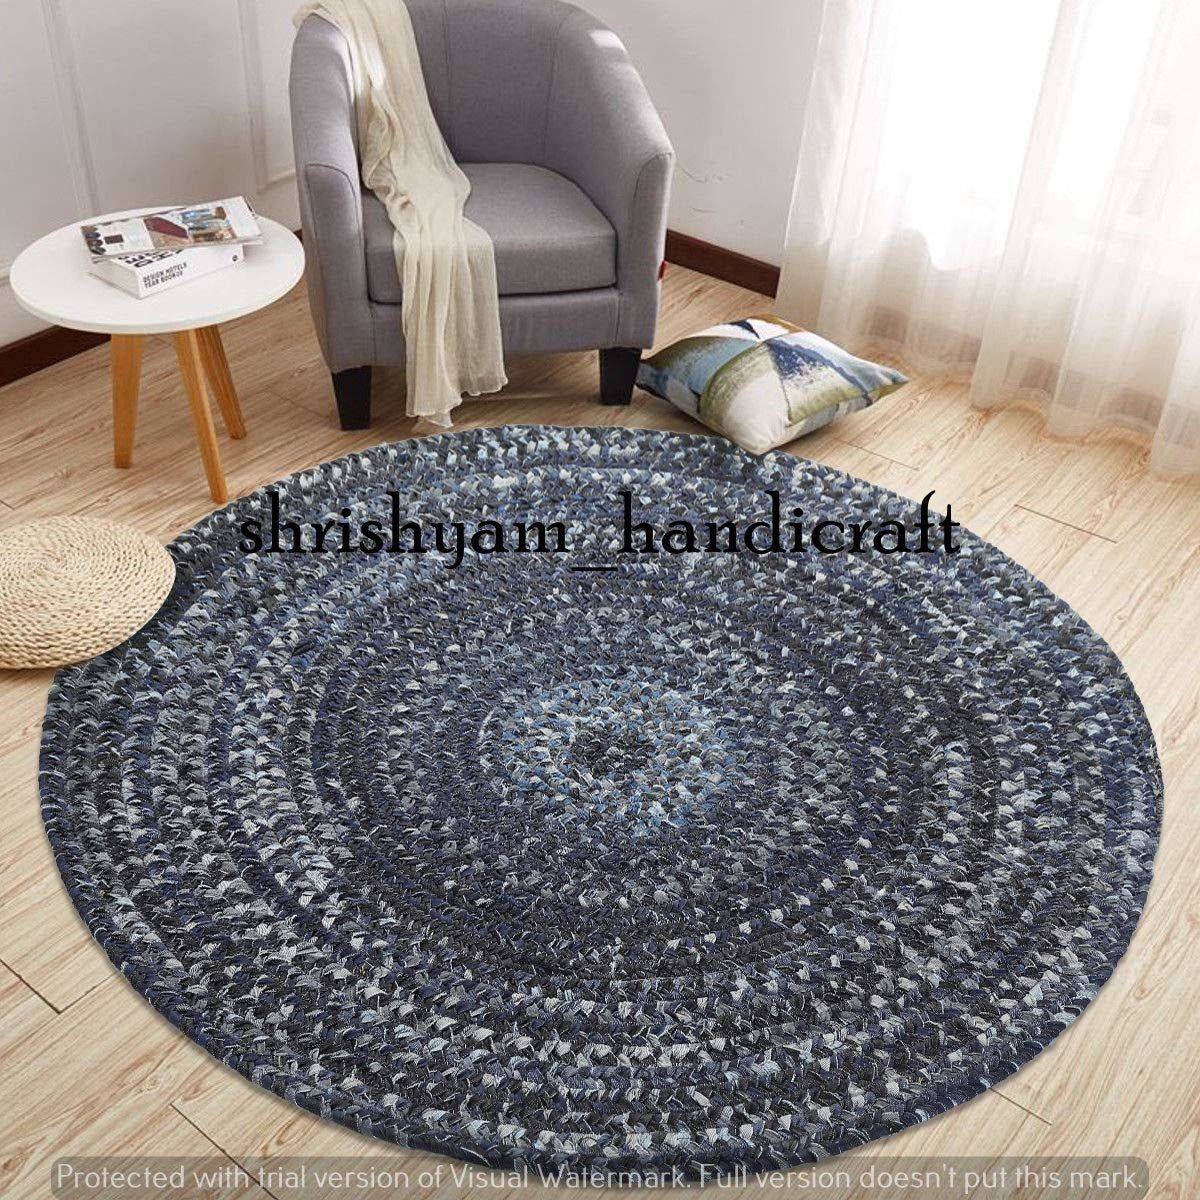 Antique 4 Feet Round Braided Round Rug Meditation Mat Etsy Rugs On Carpet Round Rugs Colorful Area Rug 4 feet round rug